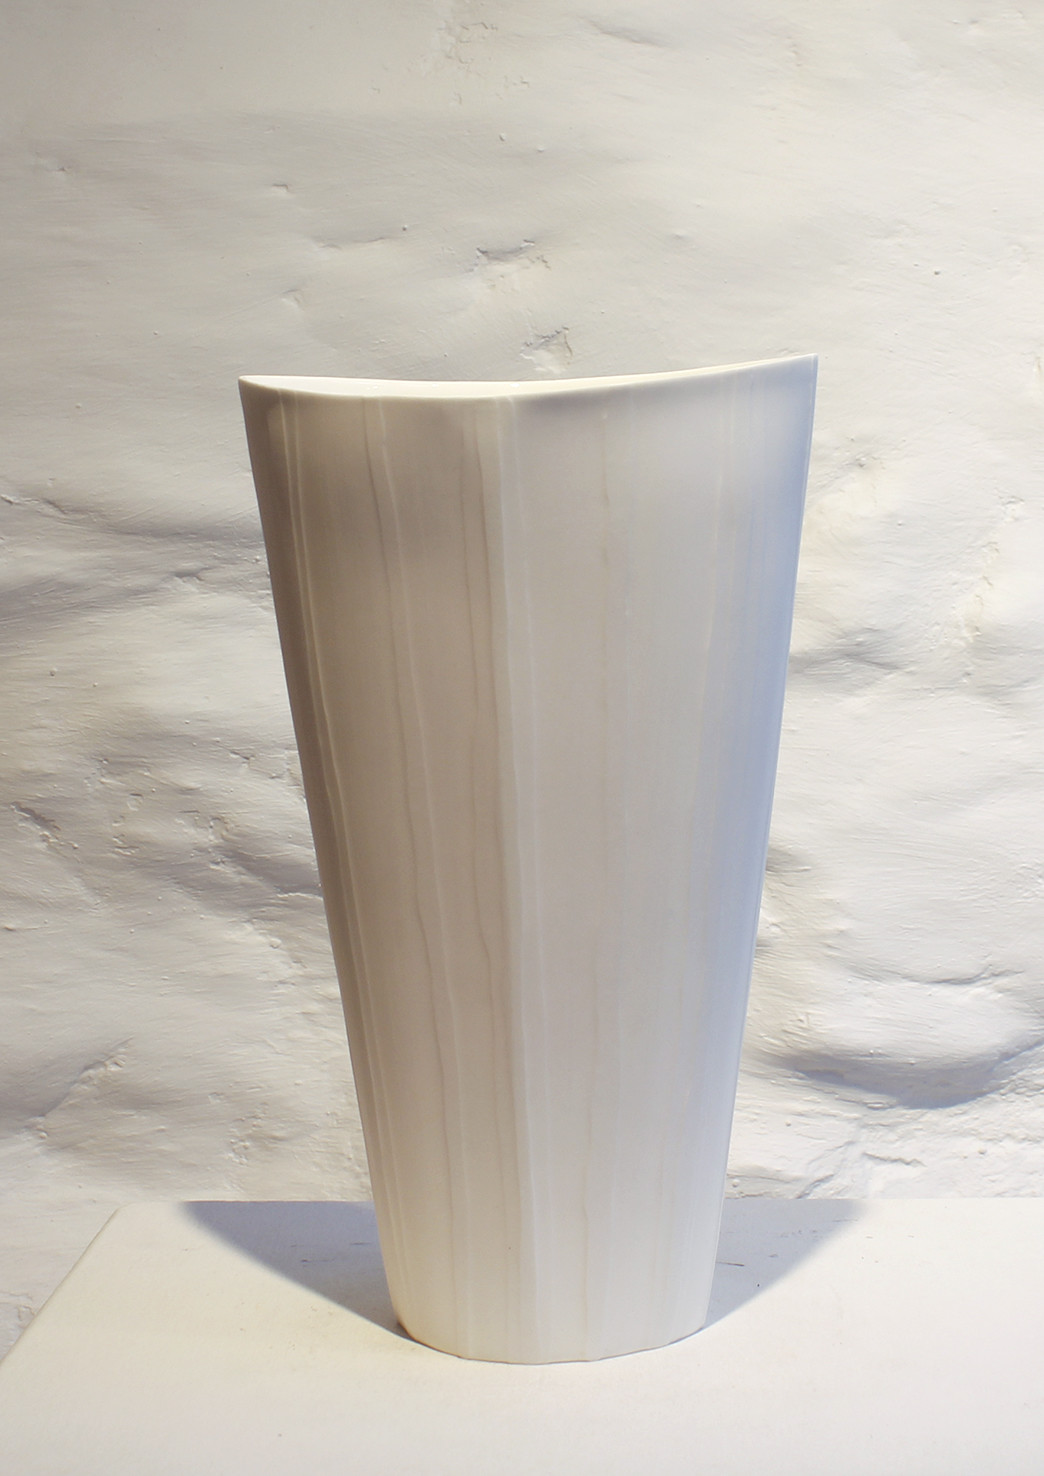 "<span class=""link fancybox-details-link""><a href=""/artists/60-sasha-wardell/works/6013-sasha-wardell-veil-flower-vase-2018/"">View Detail Page</a></span><div class=""artist""><strong>Sasha Wardell</strong></div> <div class=""title""><em>Veil Flower Vase</em>, 2018</div> <div class=""medium"">porcelain glazed and ripple</div><div class=""price"">£220.00</div><div class=""copyright_line"">Copyright The Artist</div>"